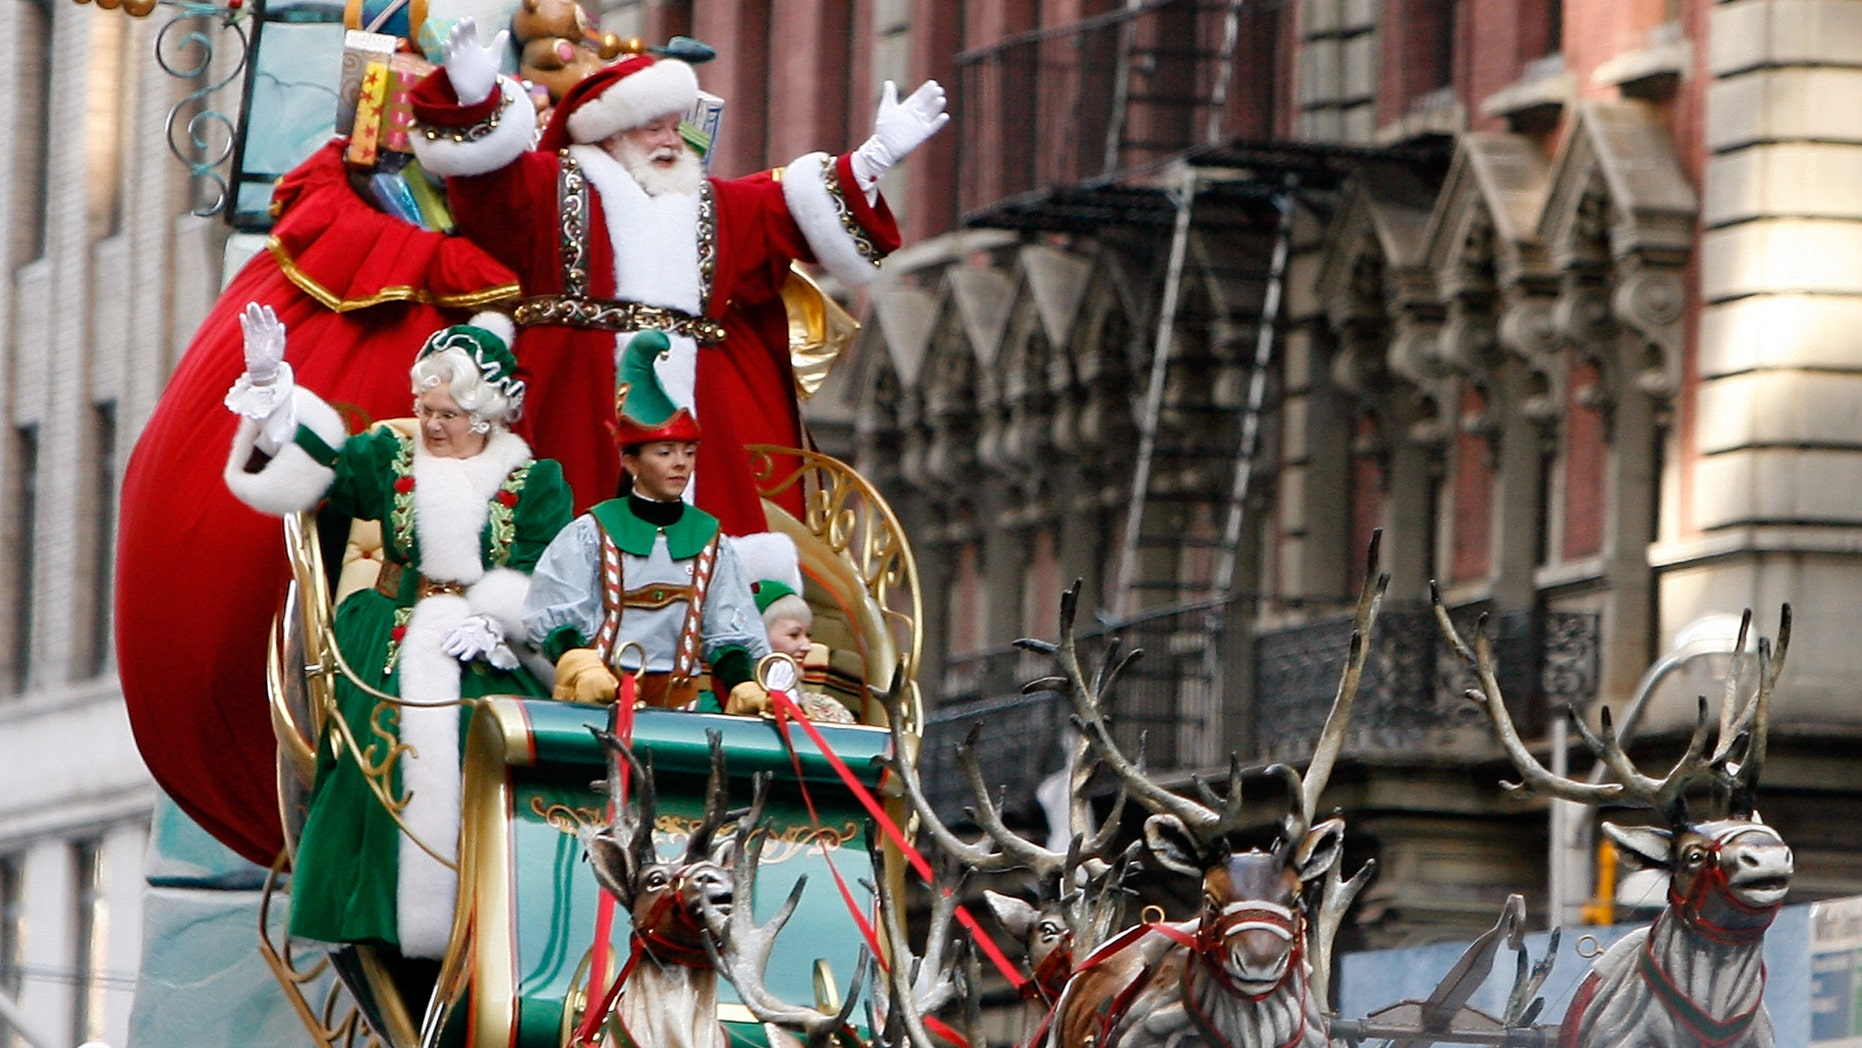 Santa Claus attends the 86th Annual Macy's Thanksgiving Day Parade on November 22, 2012 in New York City.  (Photo by Mike Lawrie/Getty Images)